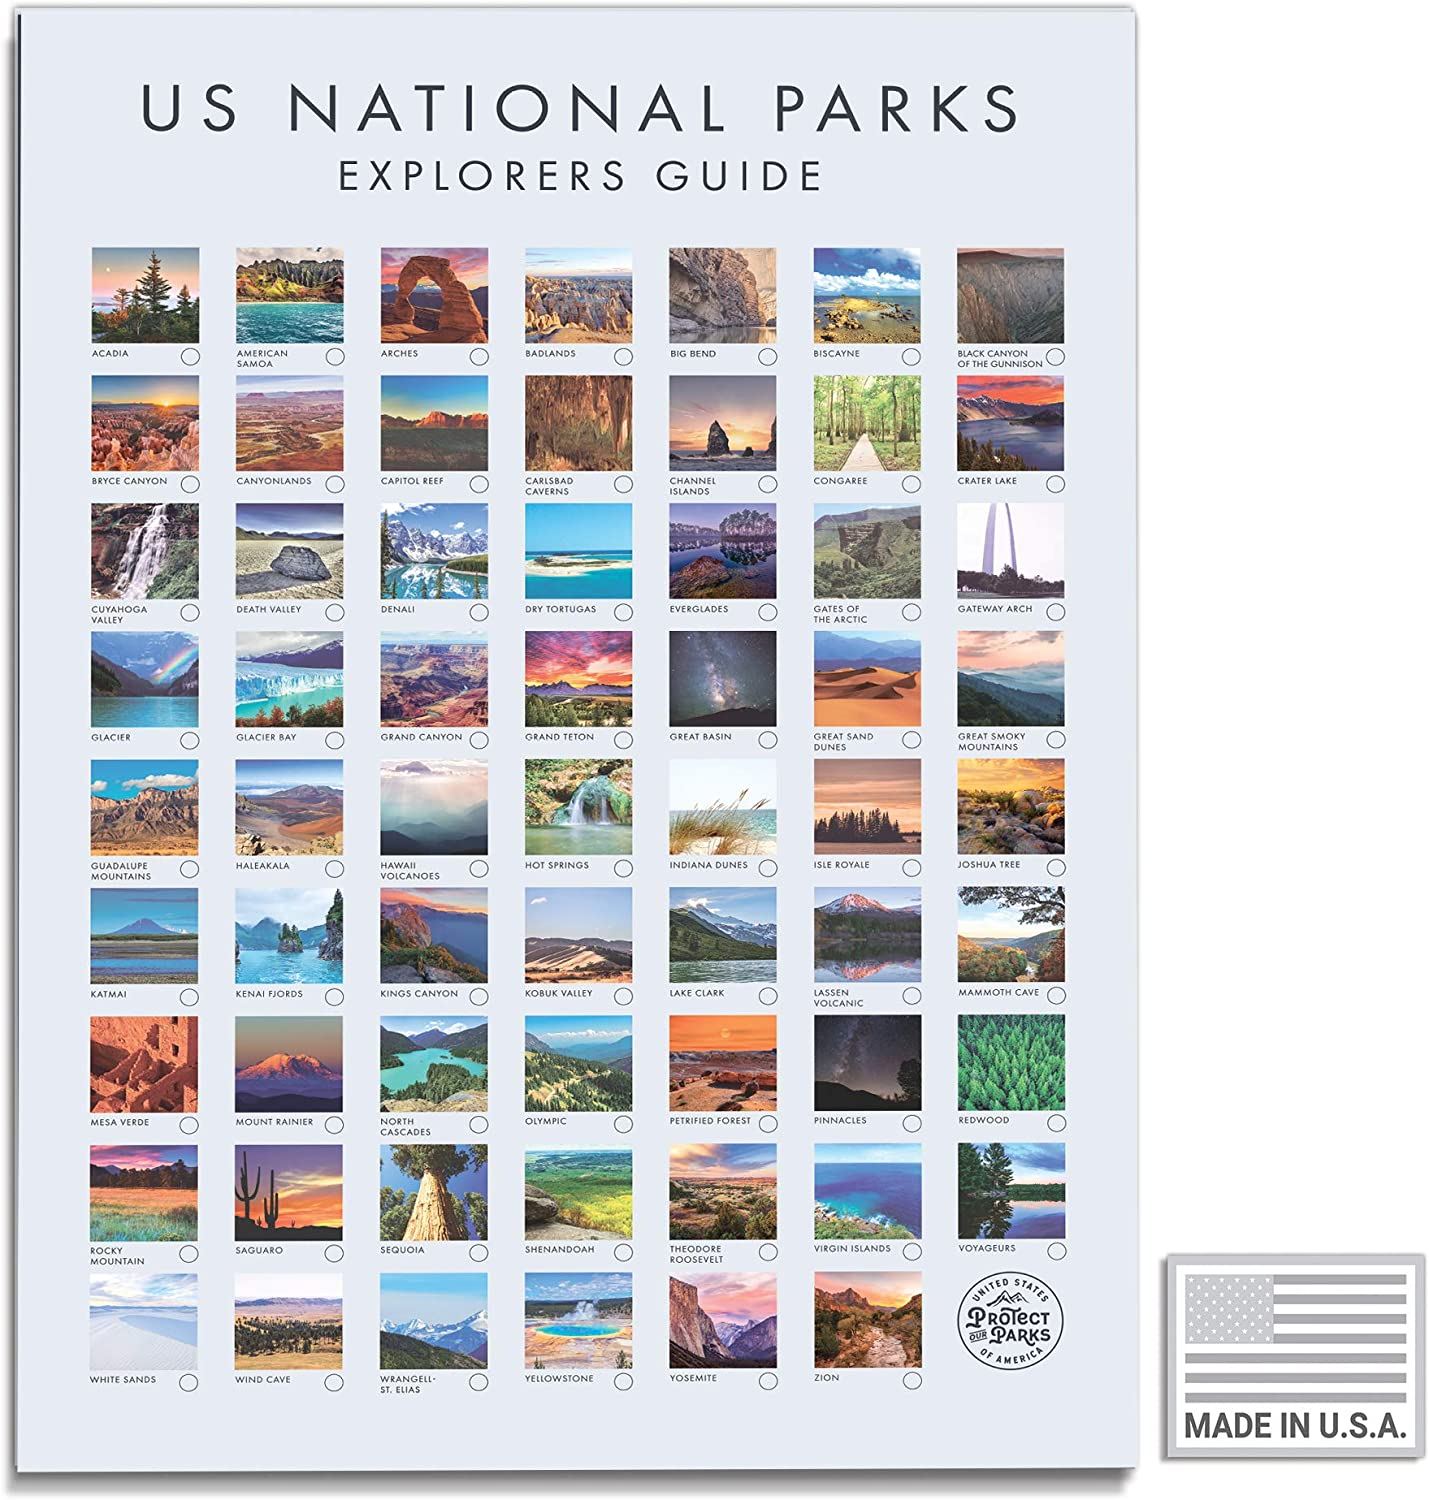 USA National Park Poster - Interactive Travel Map With All 62 US National Parks - Made in the USA - Mark Your Travels Through Our Beautiful National Parks Great National Park Poster Gift for Travelers